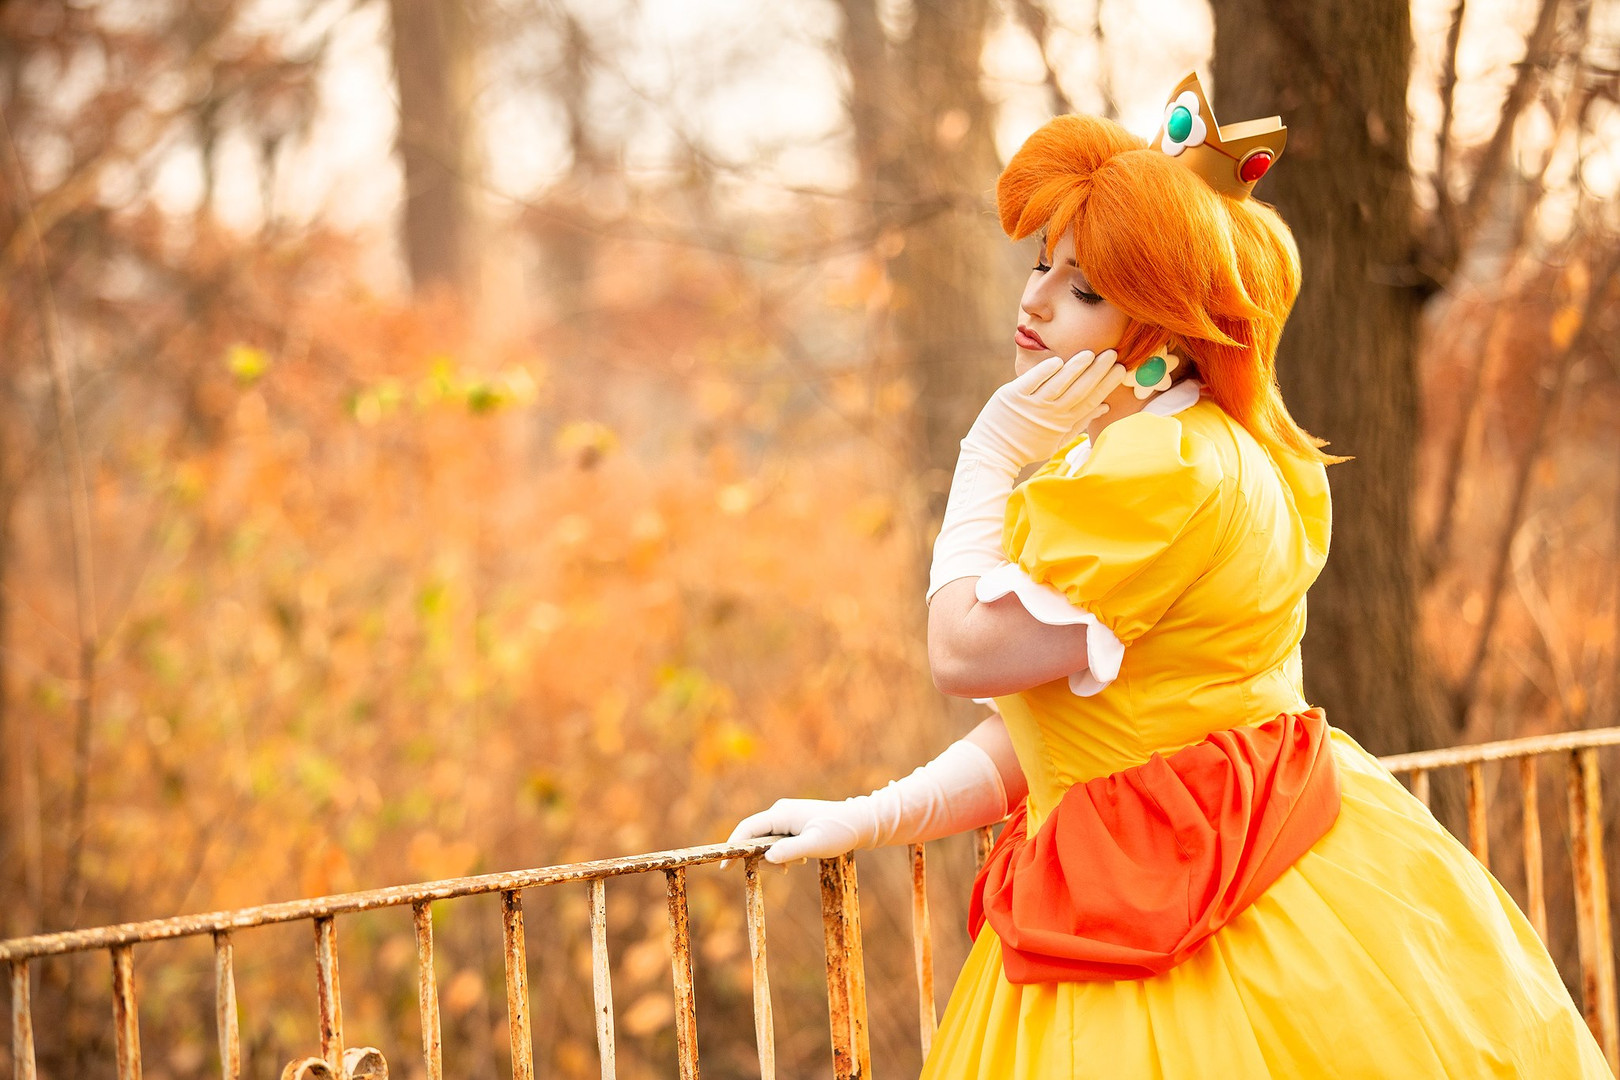 Princess Daisy by Umbranwitch